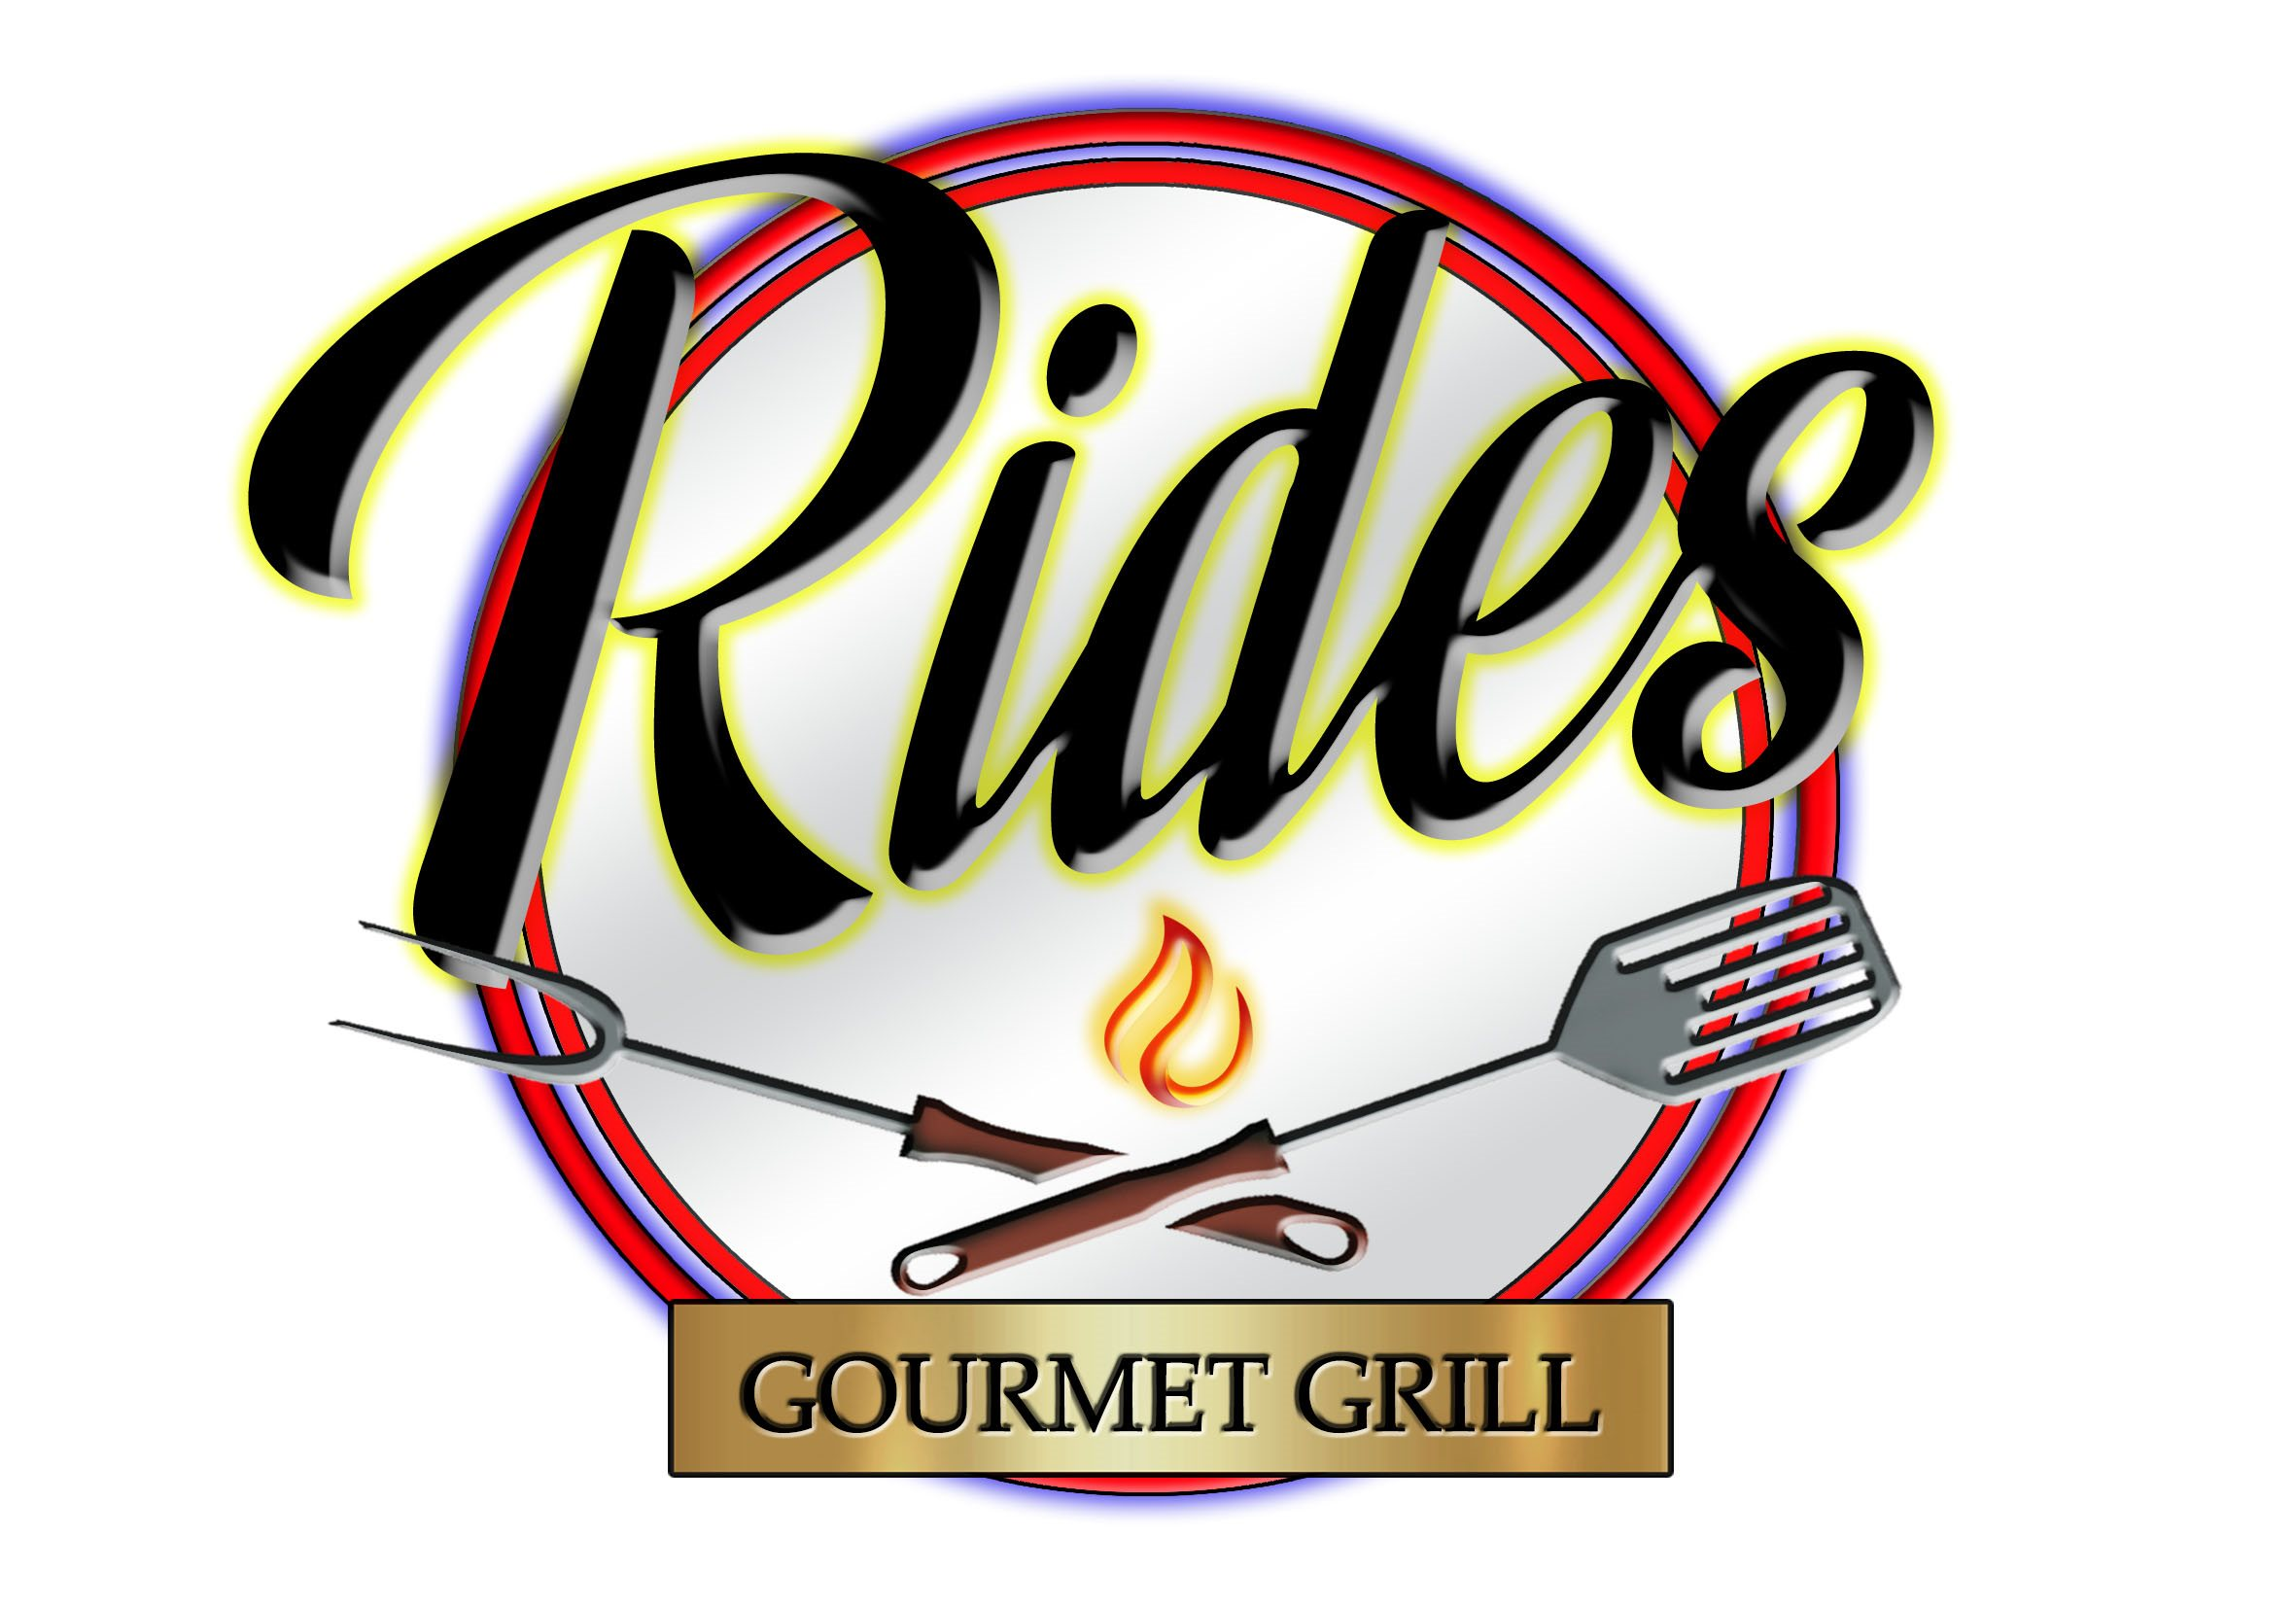 RIDES GOURMET GRILL